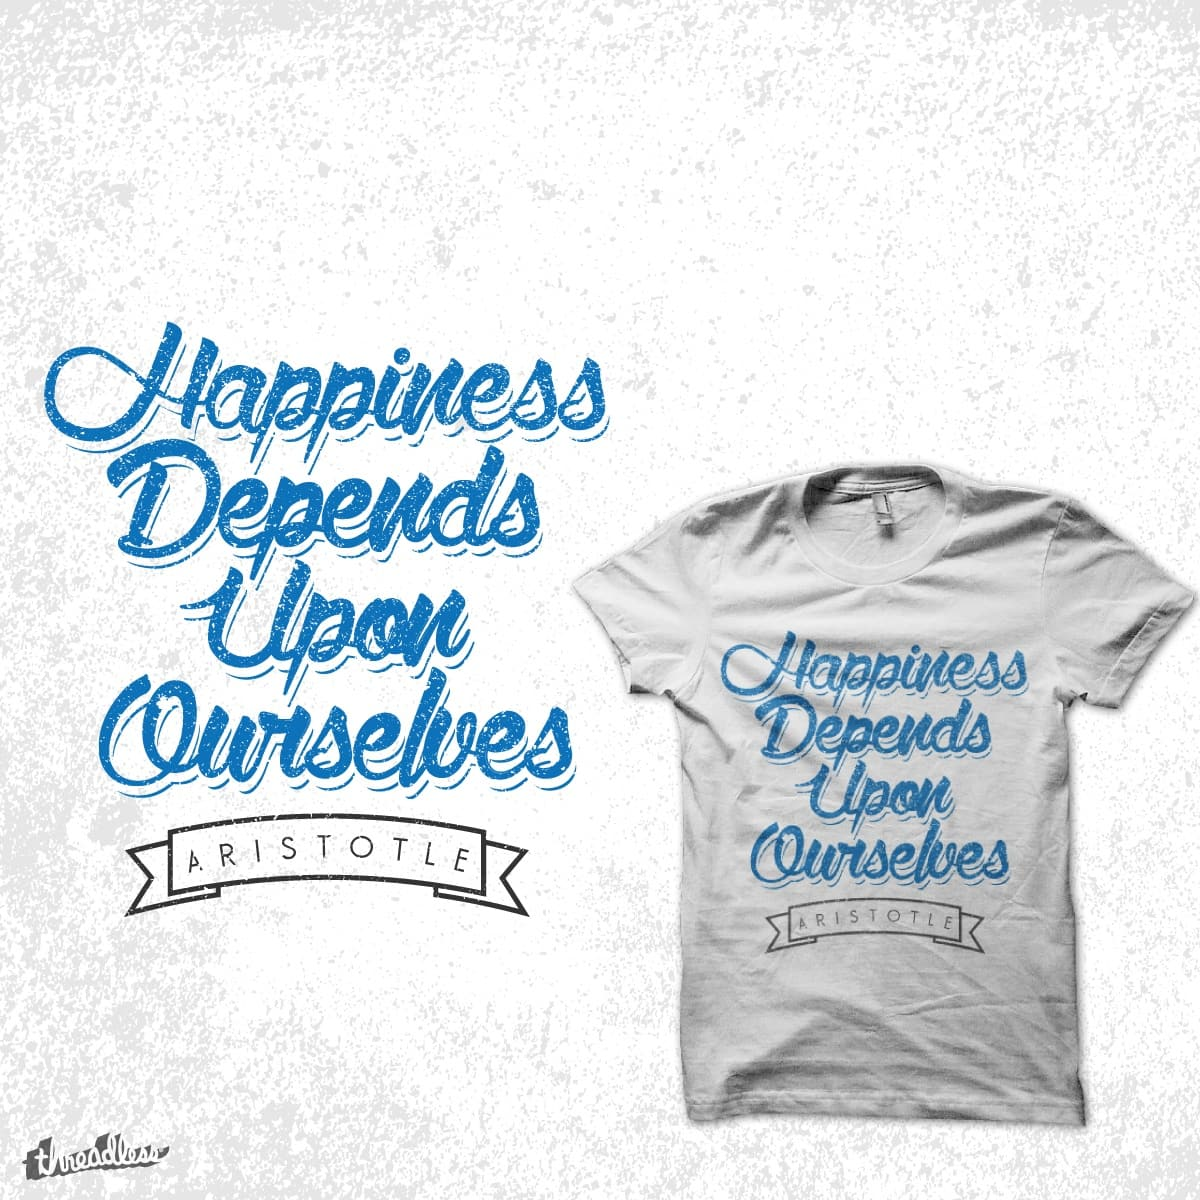 Happiness! by reaxur on Threadless